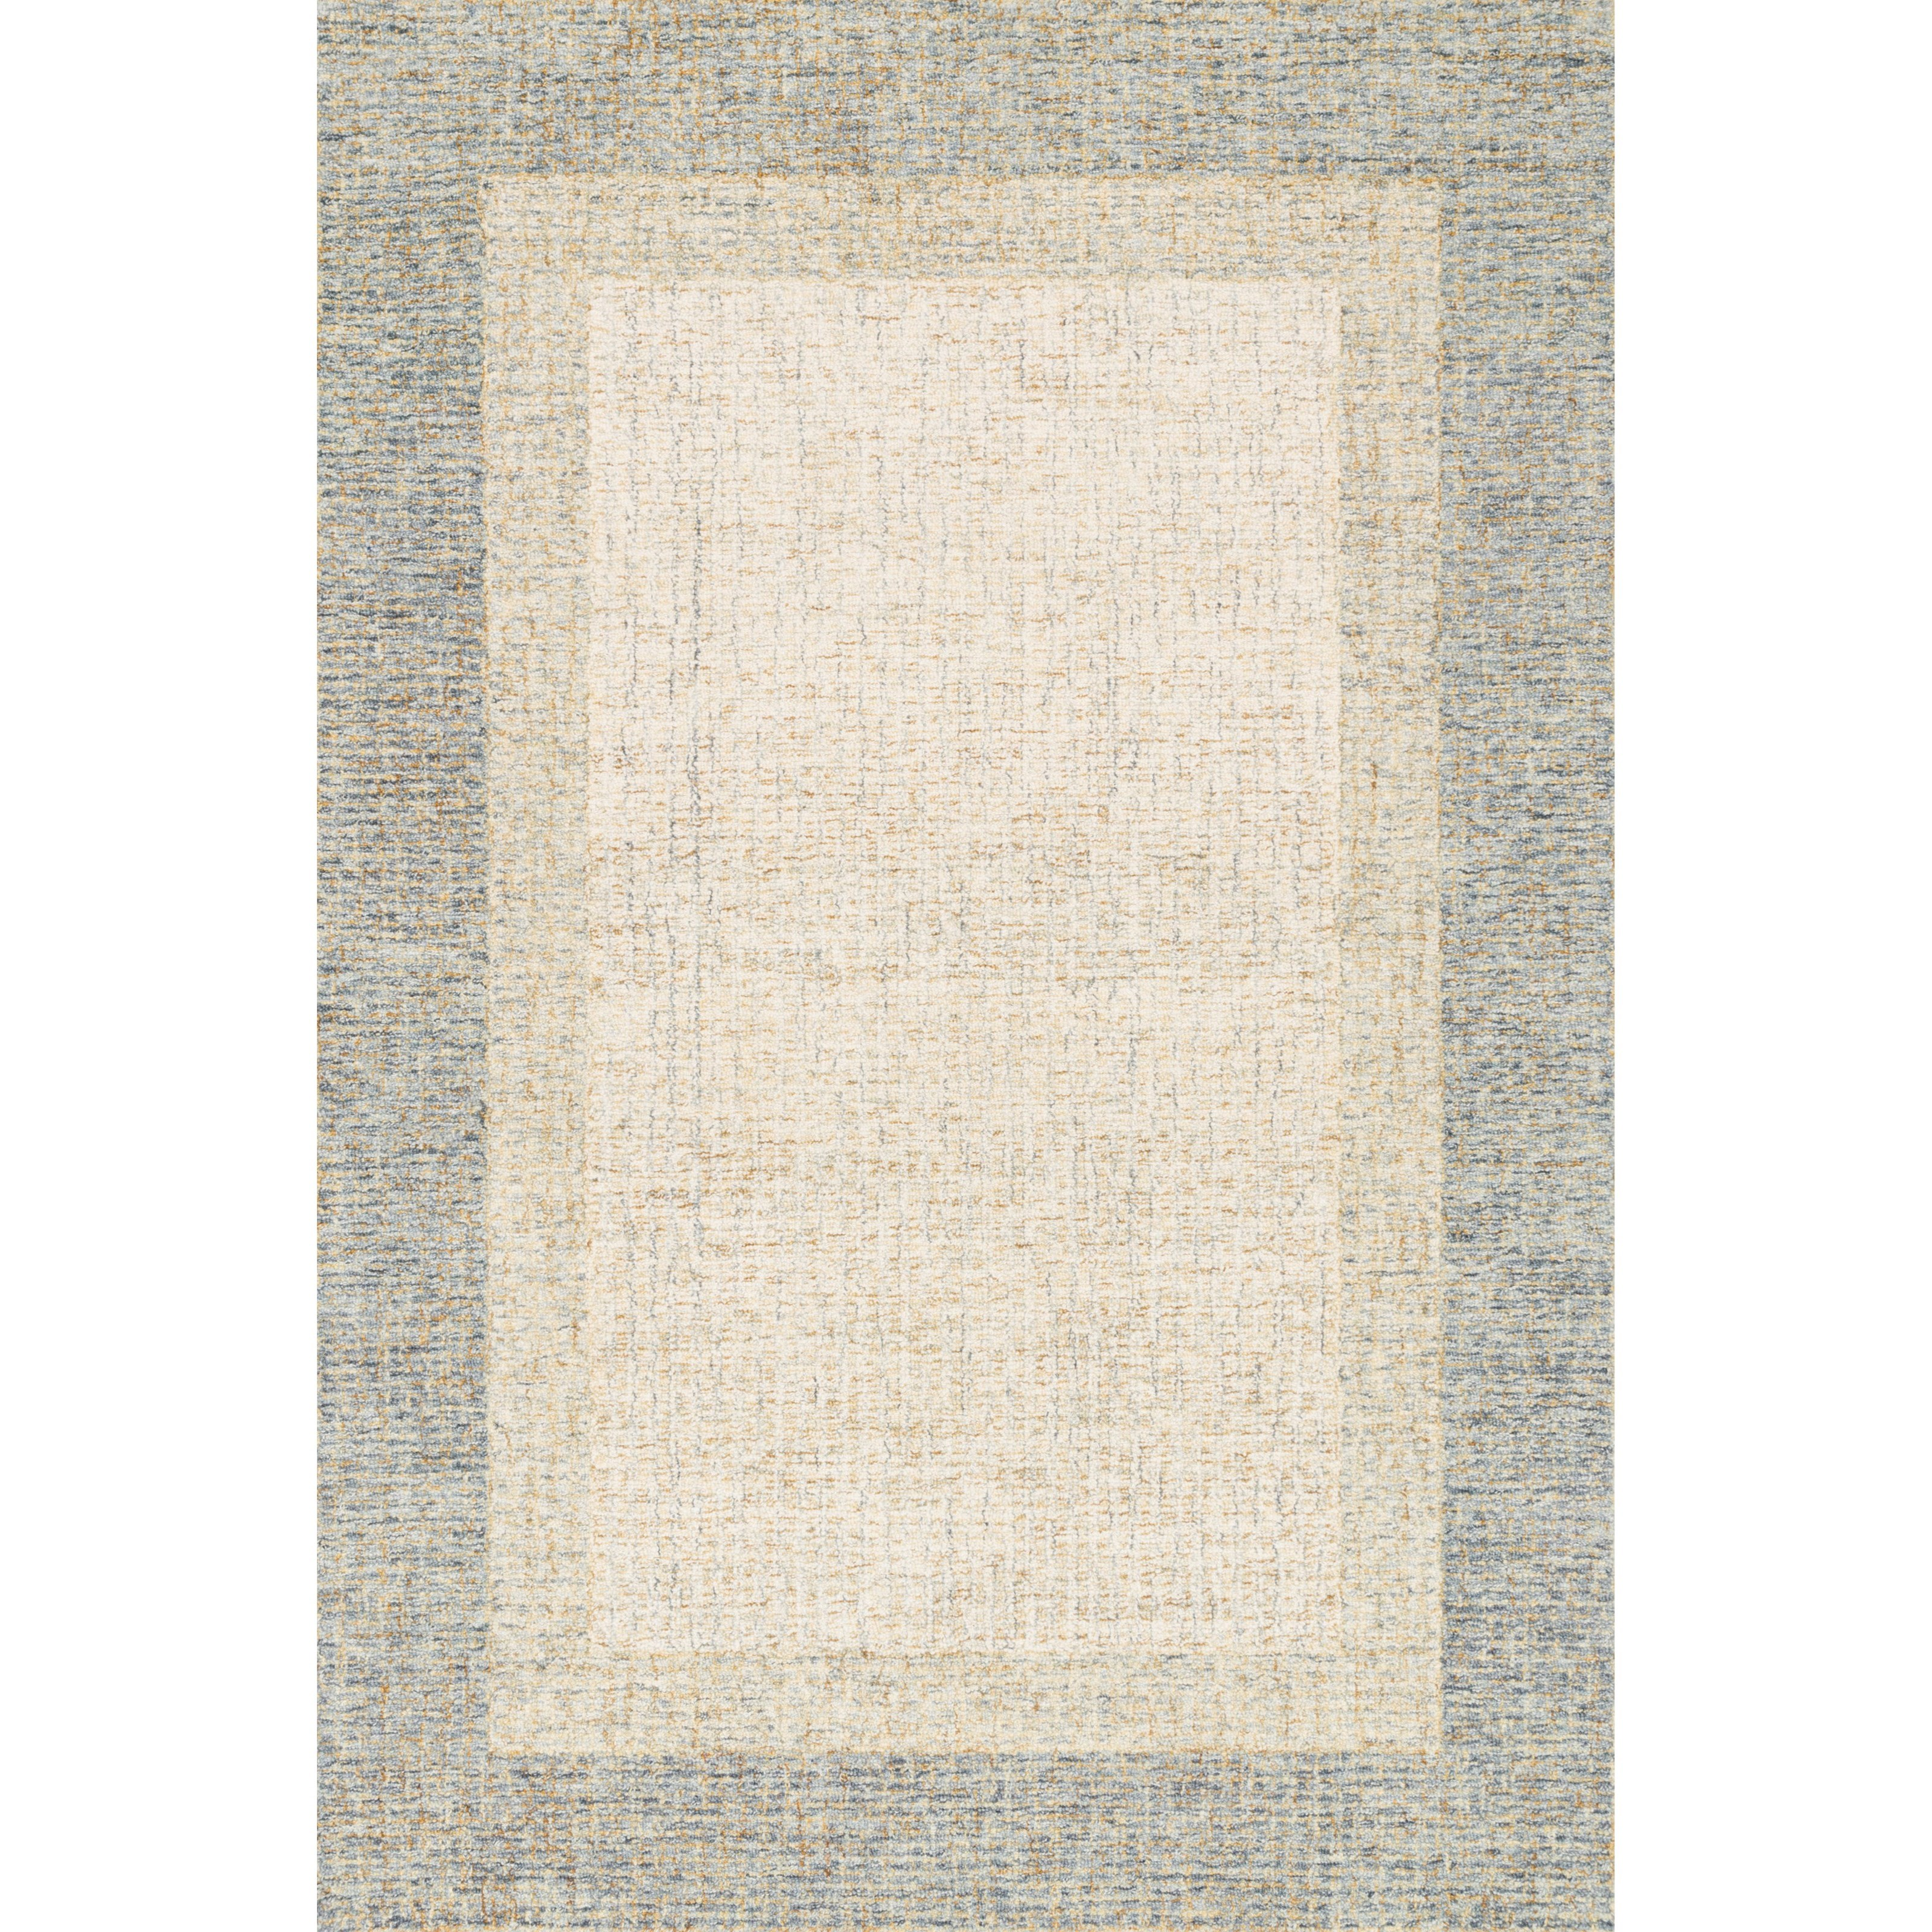 """Rosina 2'6"""" x 9'9"""" Sand Rug by Loloi Rugs at Virginia Furniture Market"""